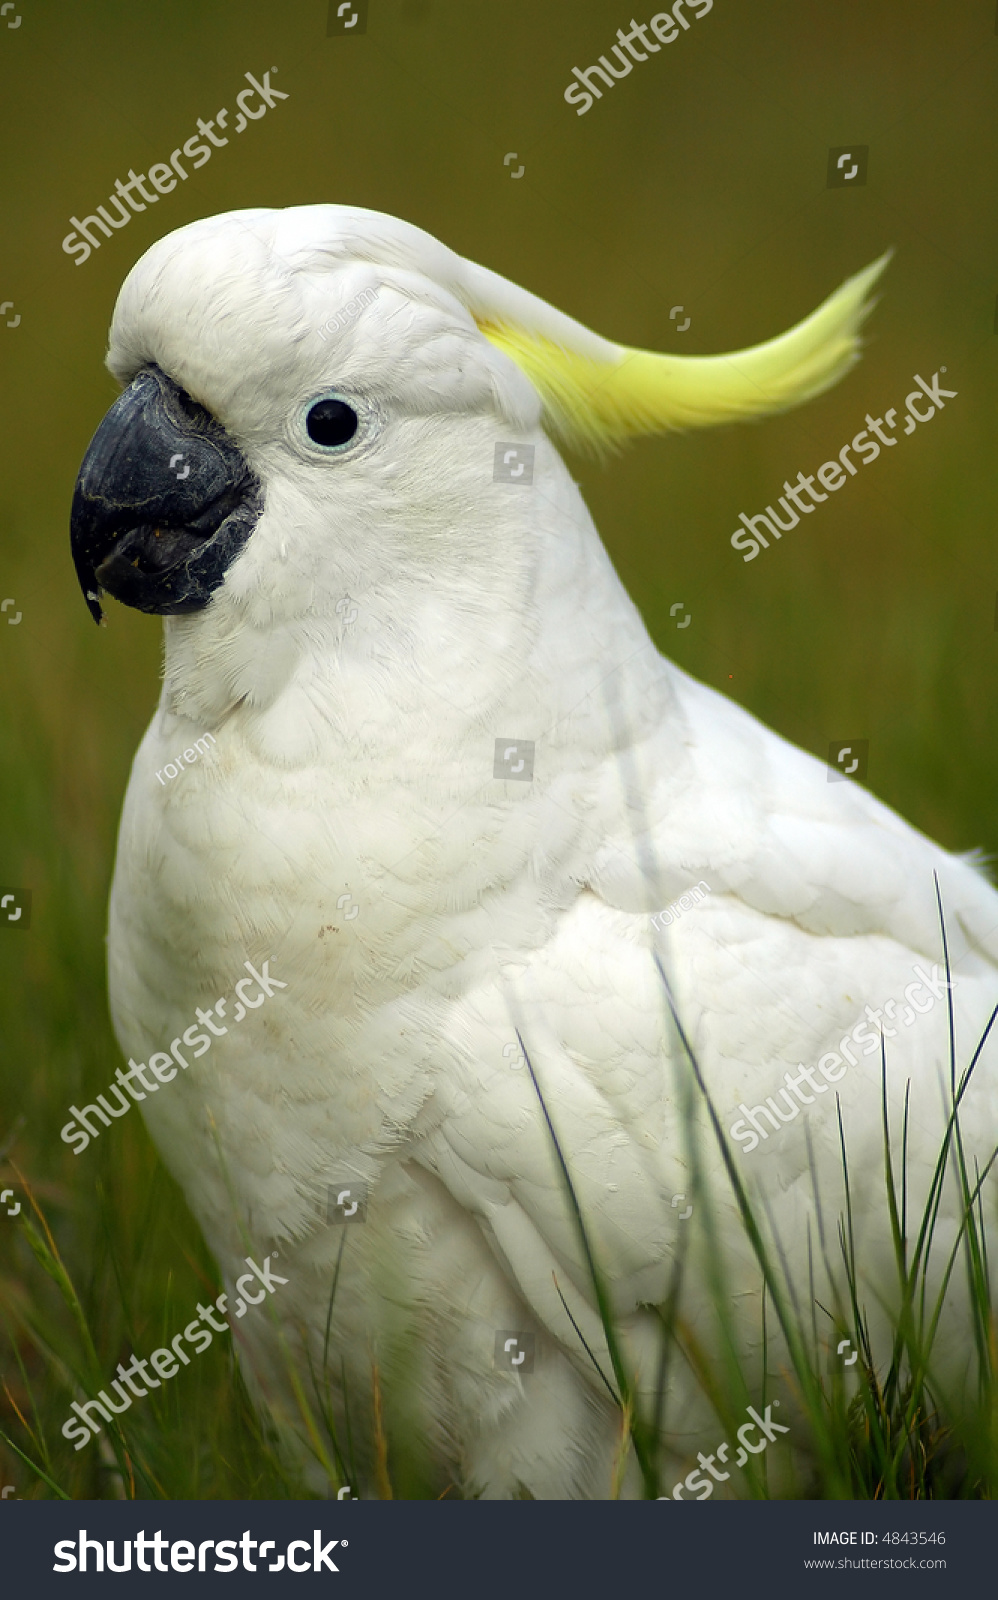 white parrot yellow feathers on head stock photo edit now 4843546